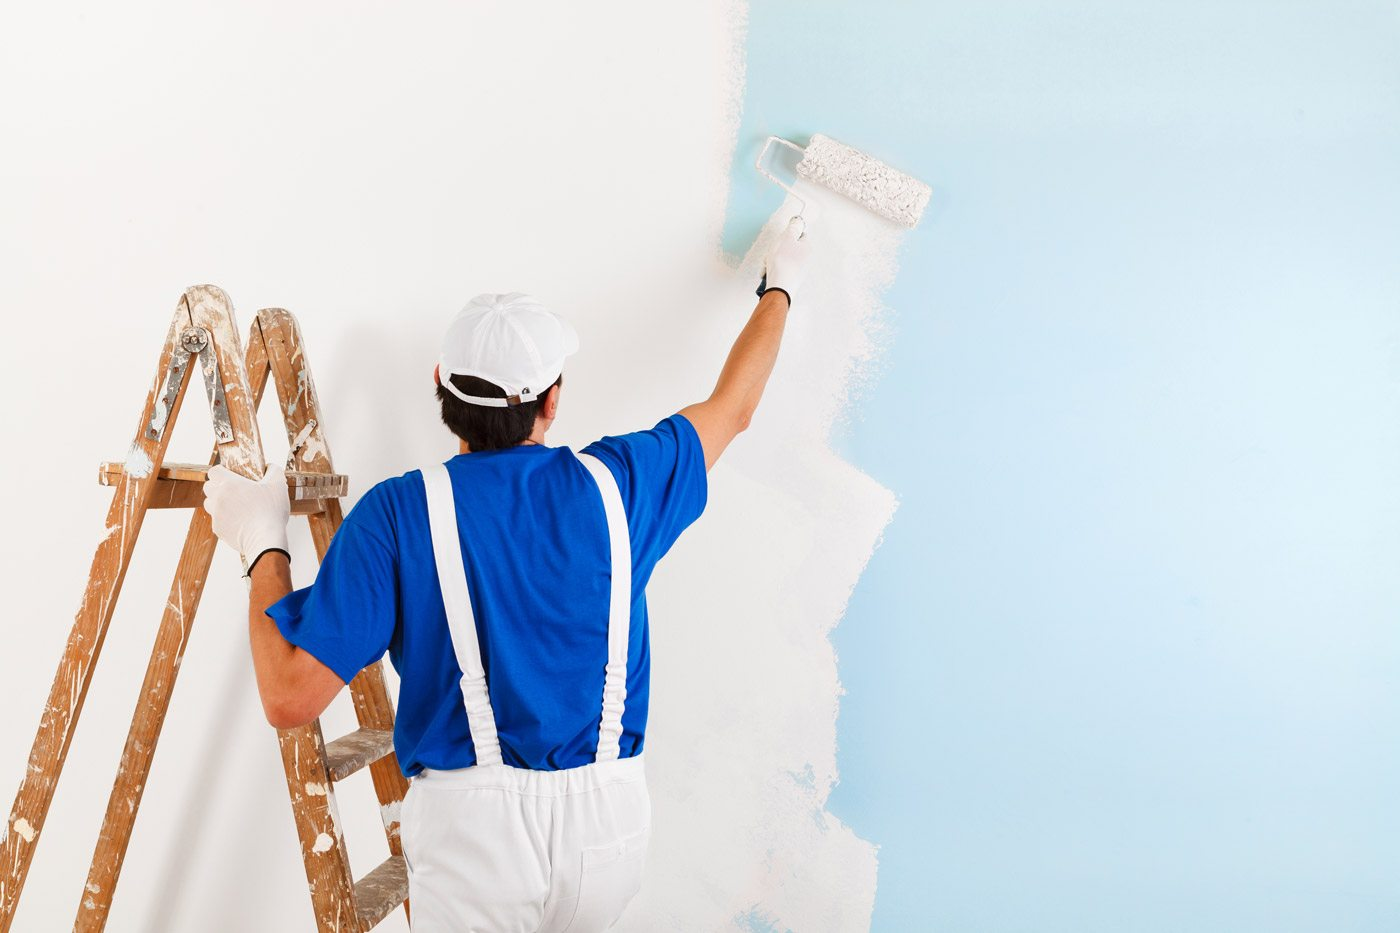 Contact Us-College Station TX Professional Painting Contractors-We offer Residential & Commercial Painting, Interior Painting, Exterior Painting, Primer Painting, Industrial Painting, Professional Painters, Institutional Painters, and more.